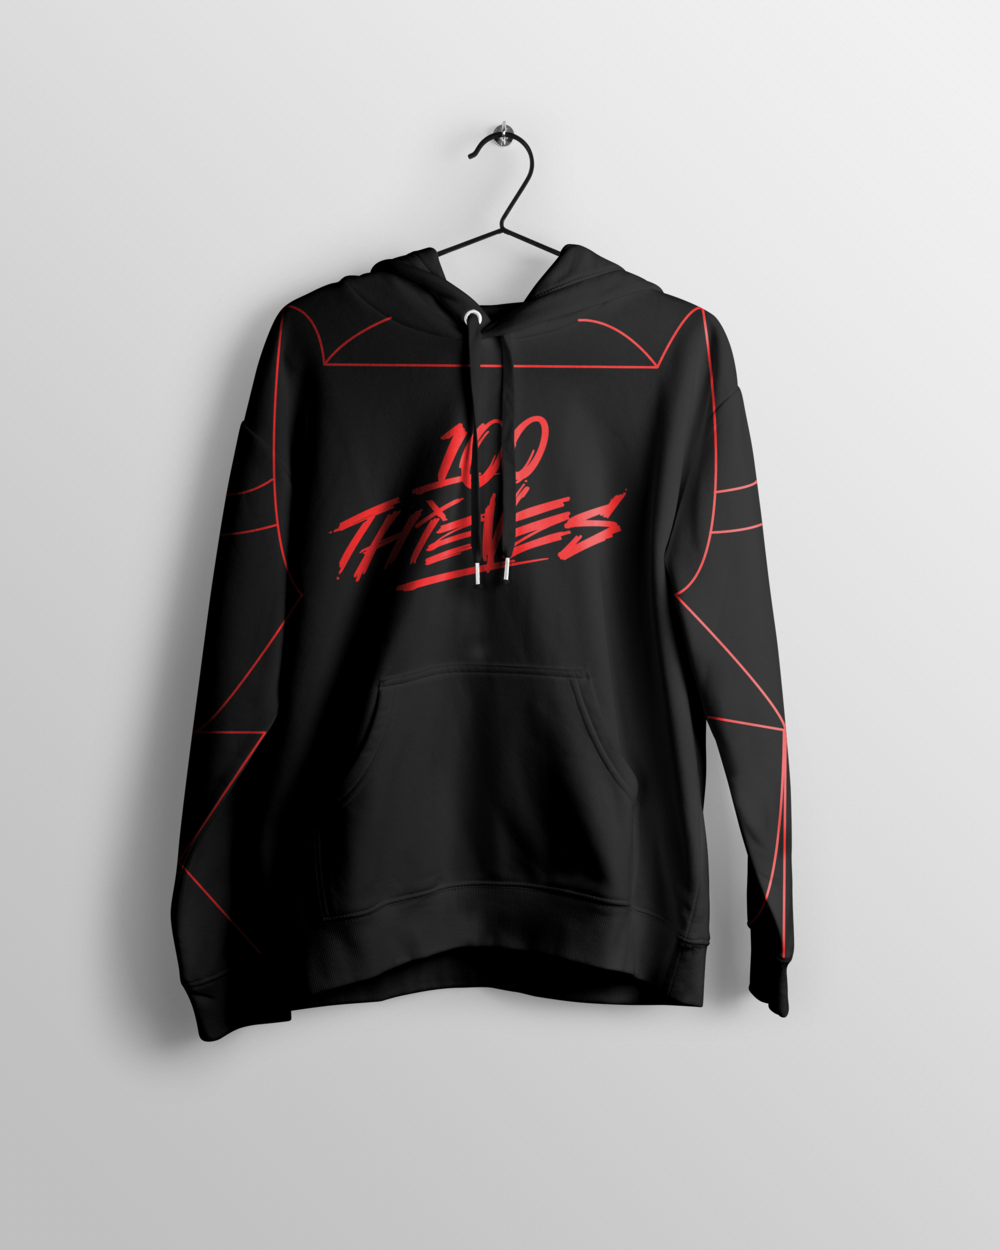 hoodie_front2.png